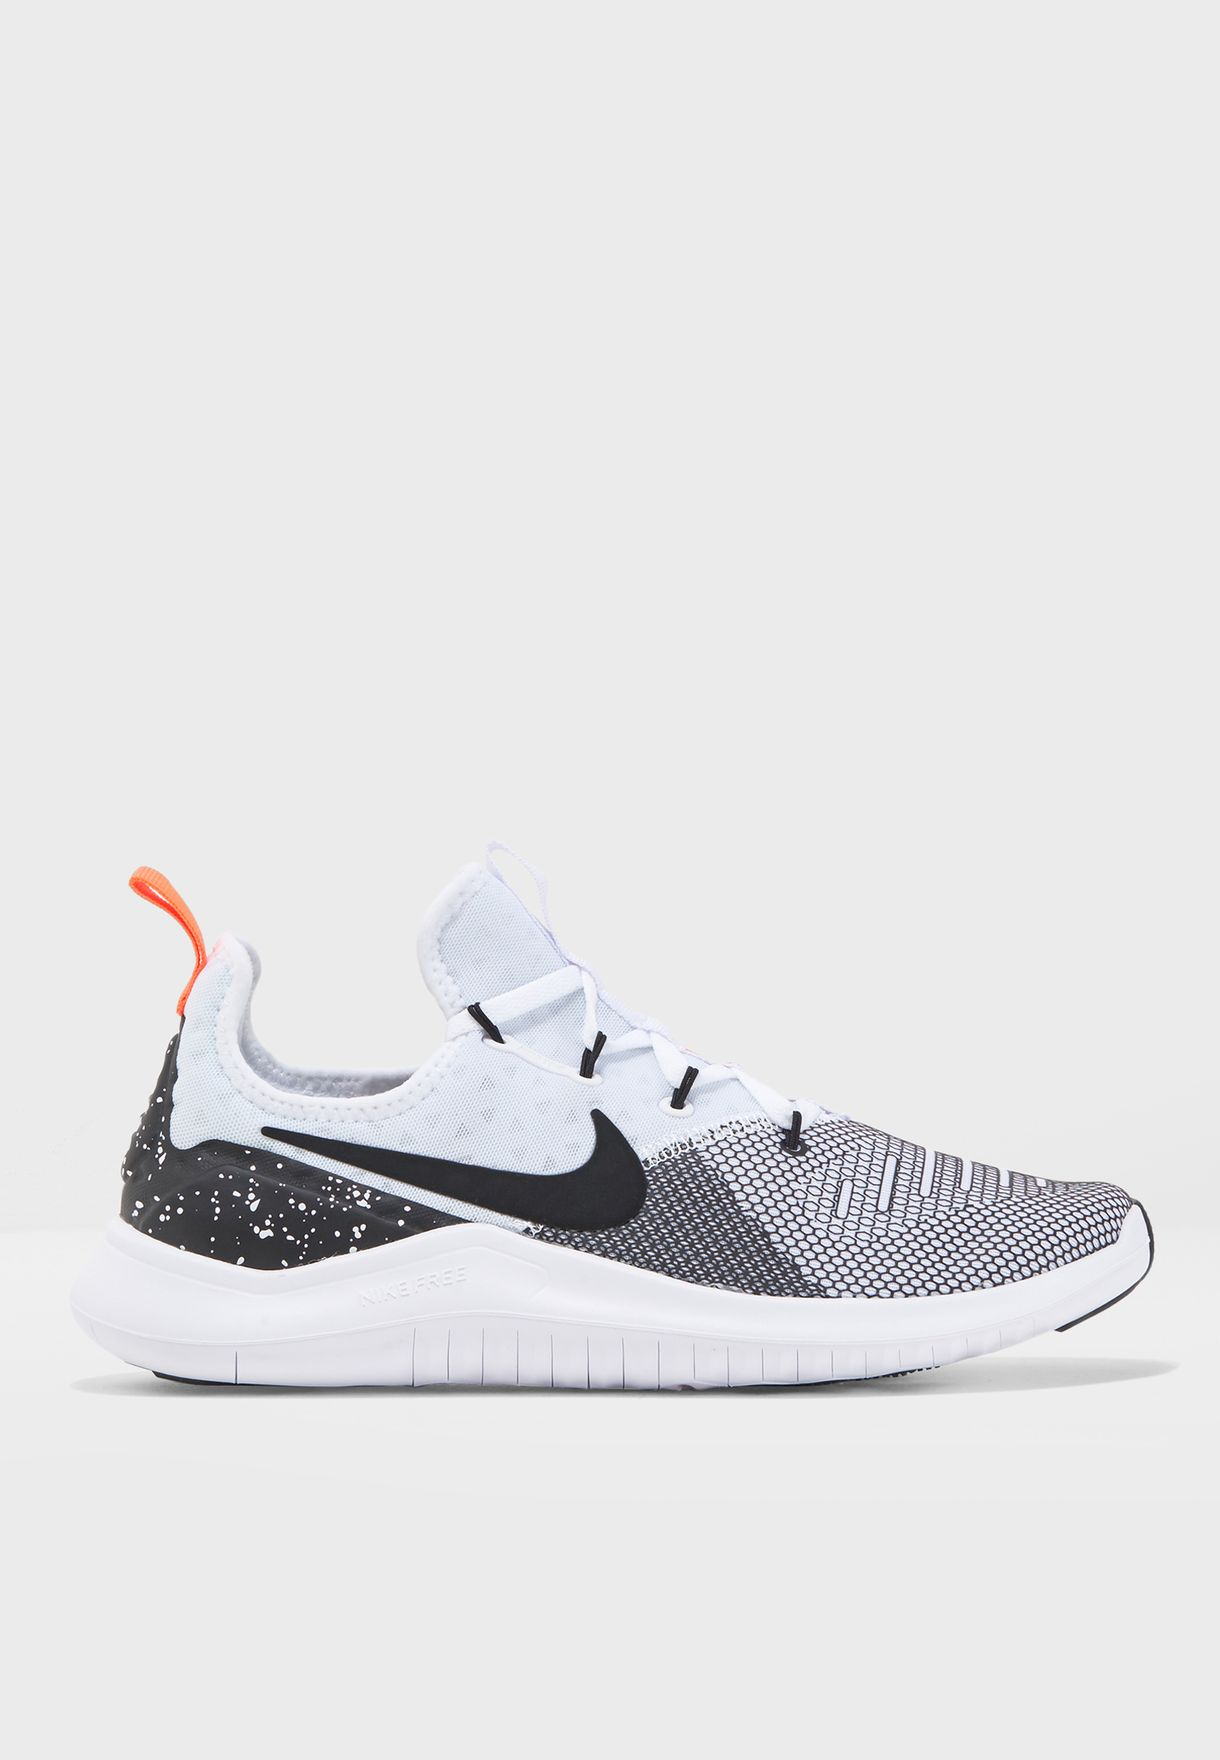 Details about Womens NIKE FREE TR 8 White Trainers 942888 101